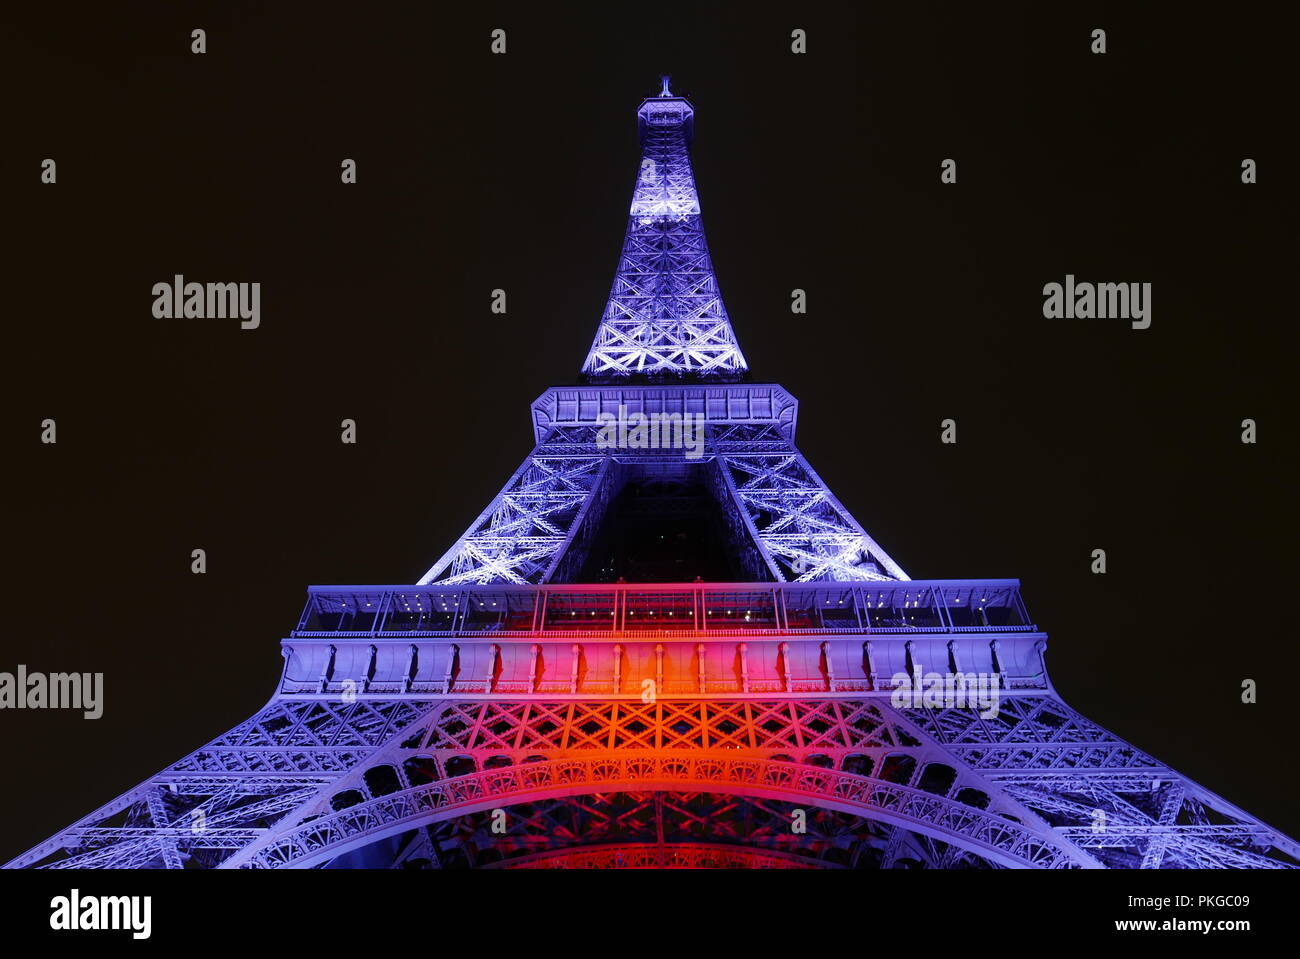 Paris, France. 13th Sep 2018. The Eiffel Tower illuminated by Japanese light at the Japonismes 2018. A light and sound show by the 2 Japanese artistes Motoko Ishii and Akori-Lisa Ishii.13.09.2018.Paris, France. Credit: Michael Scheja/Alamy Live News - Stock Image